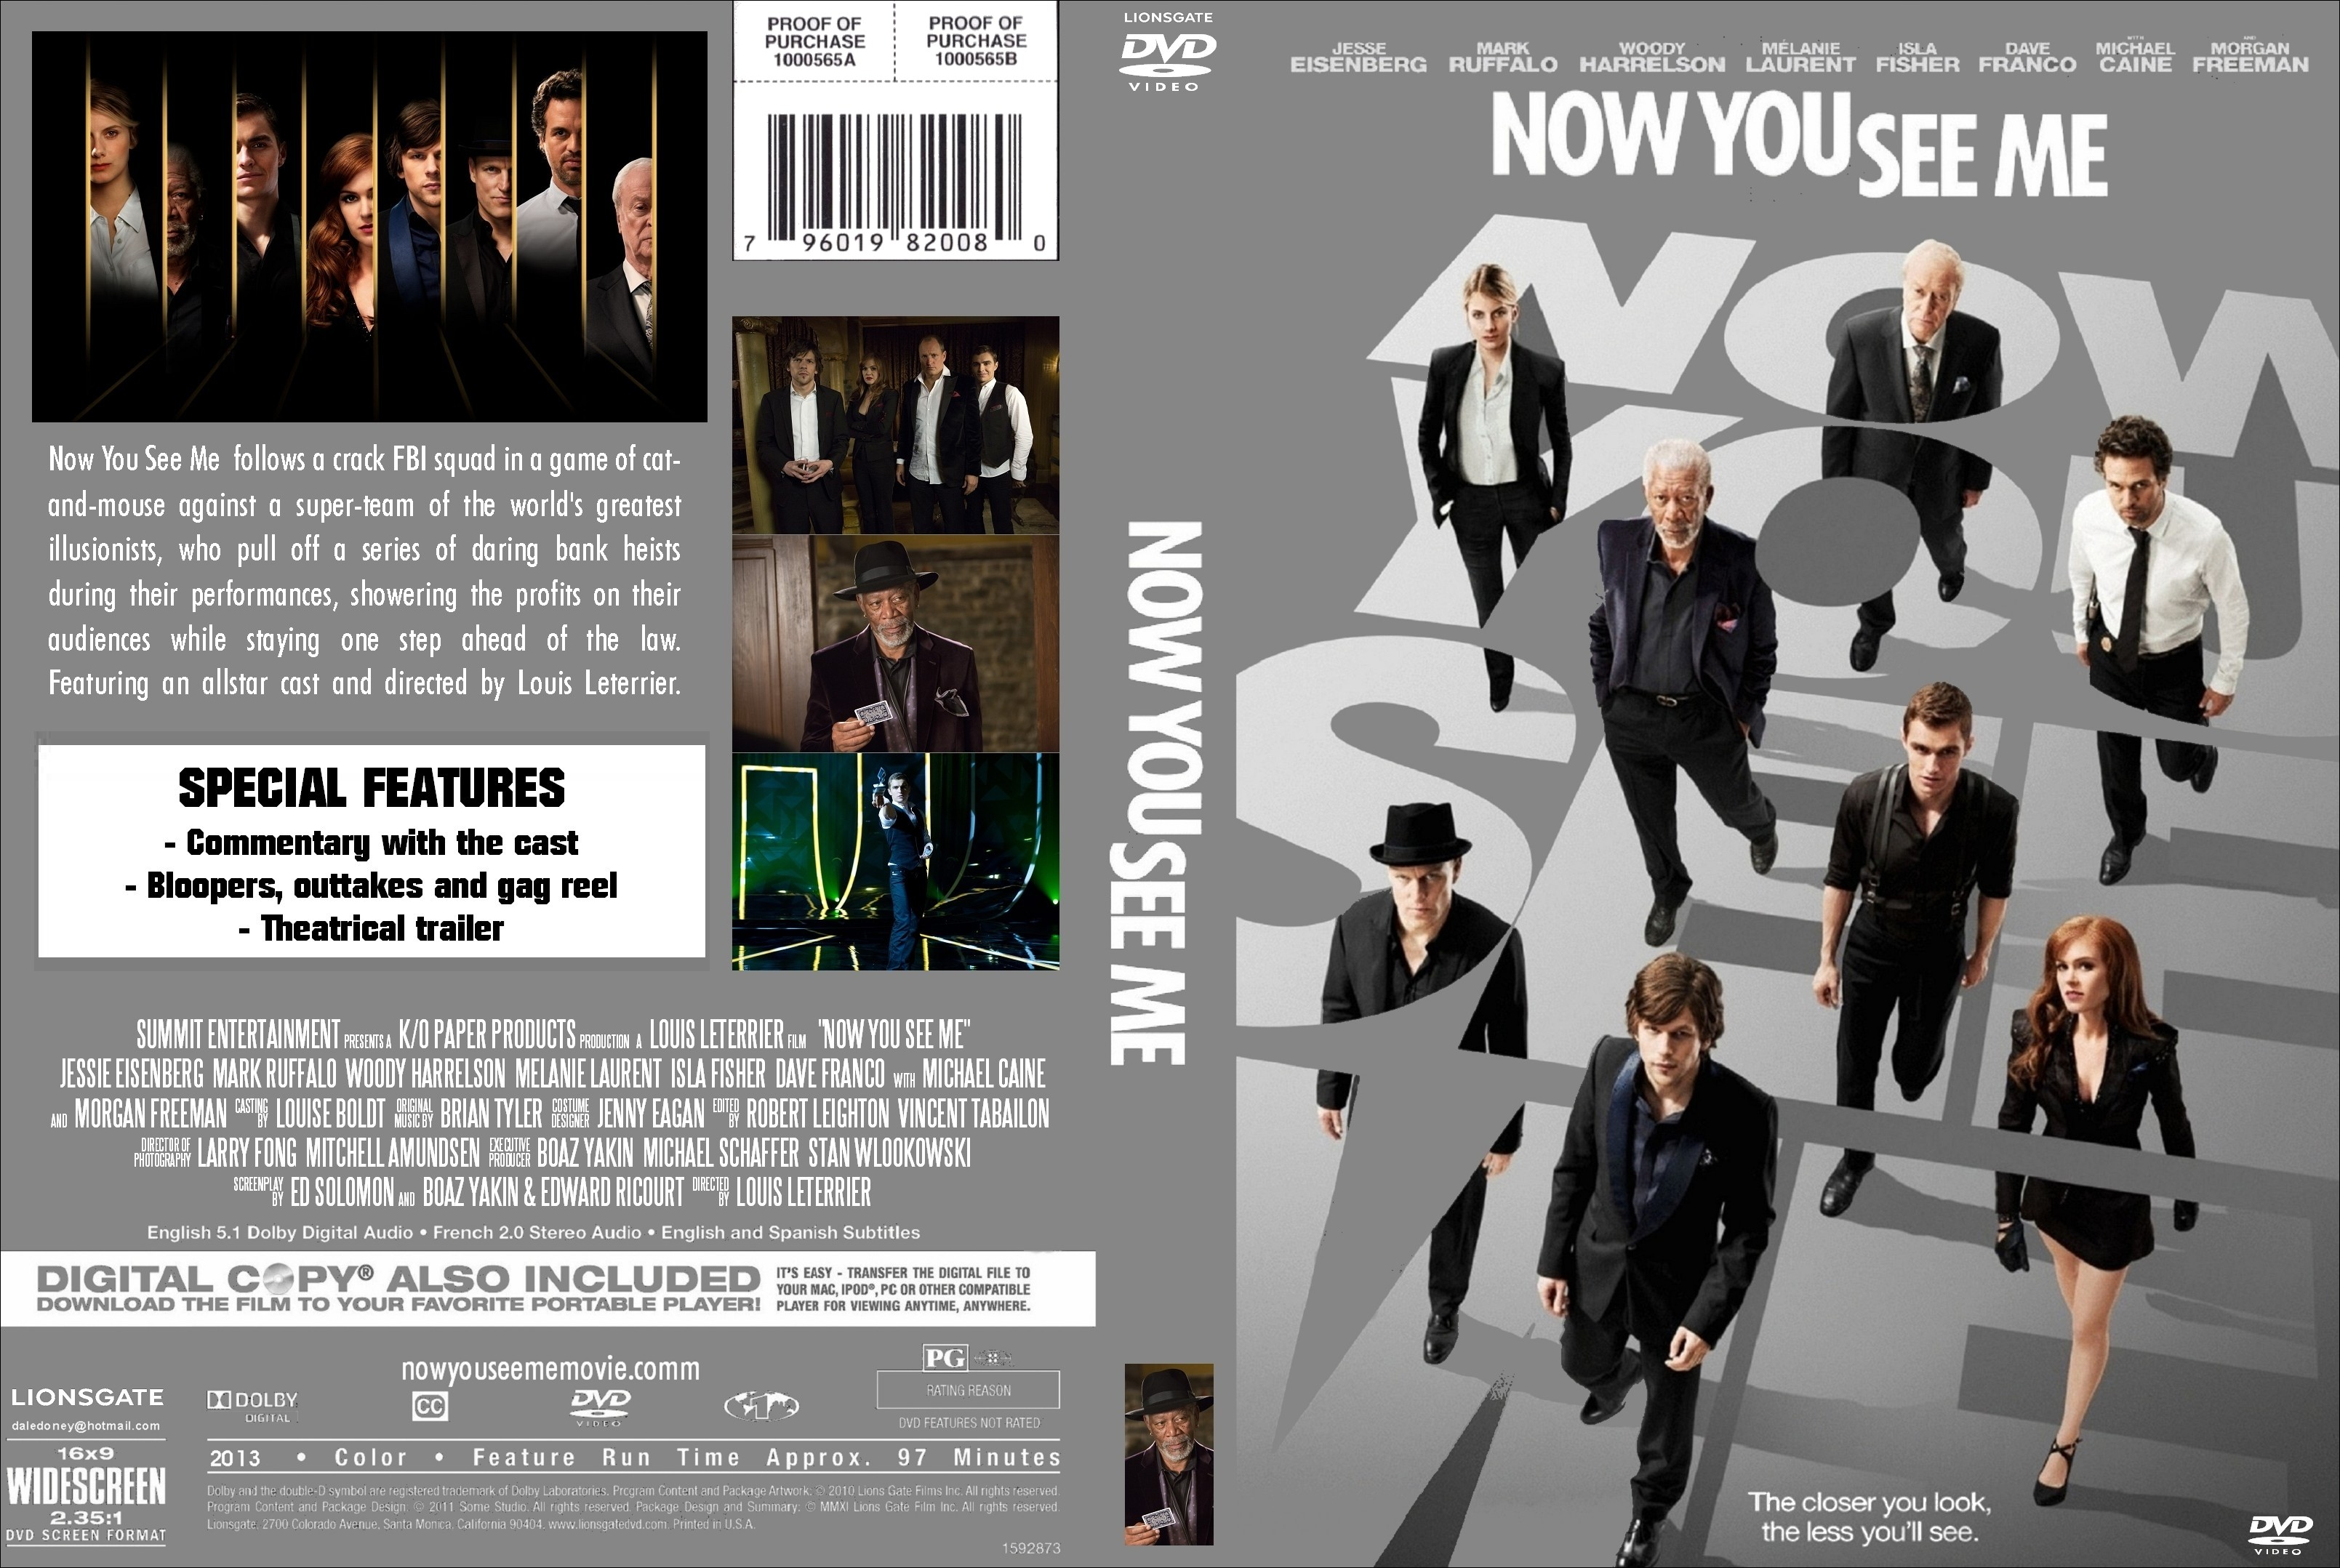 now you see me 1 full movie free download